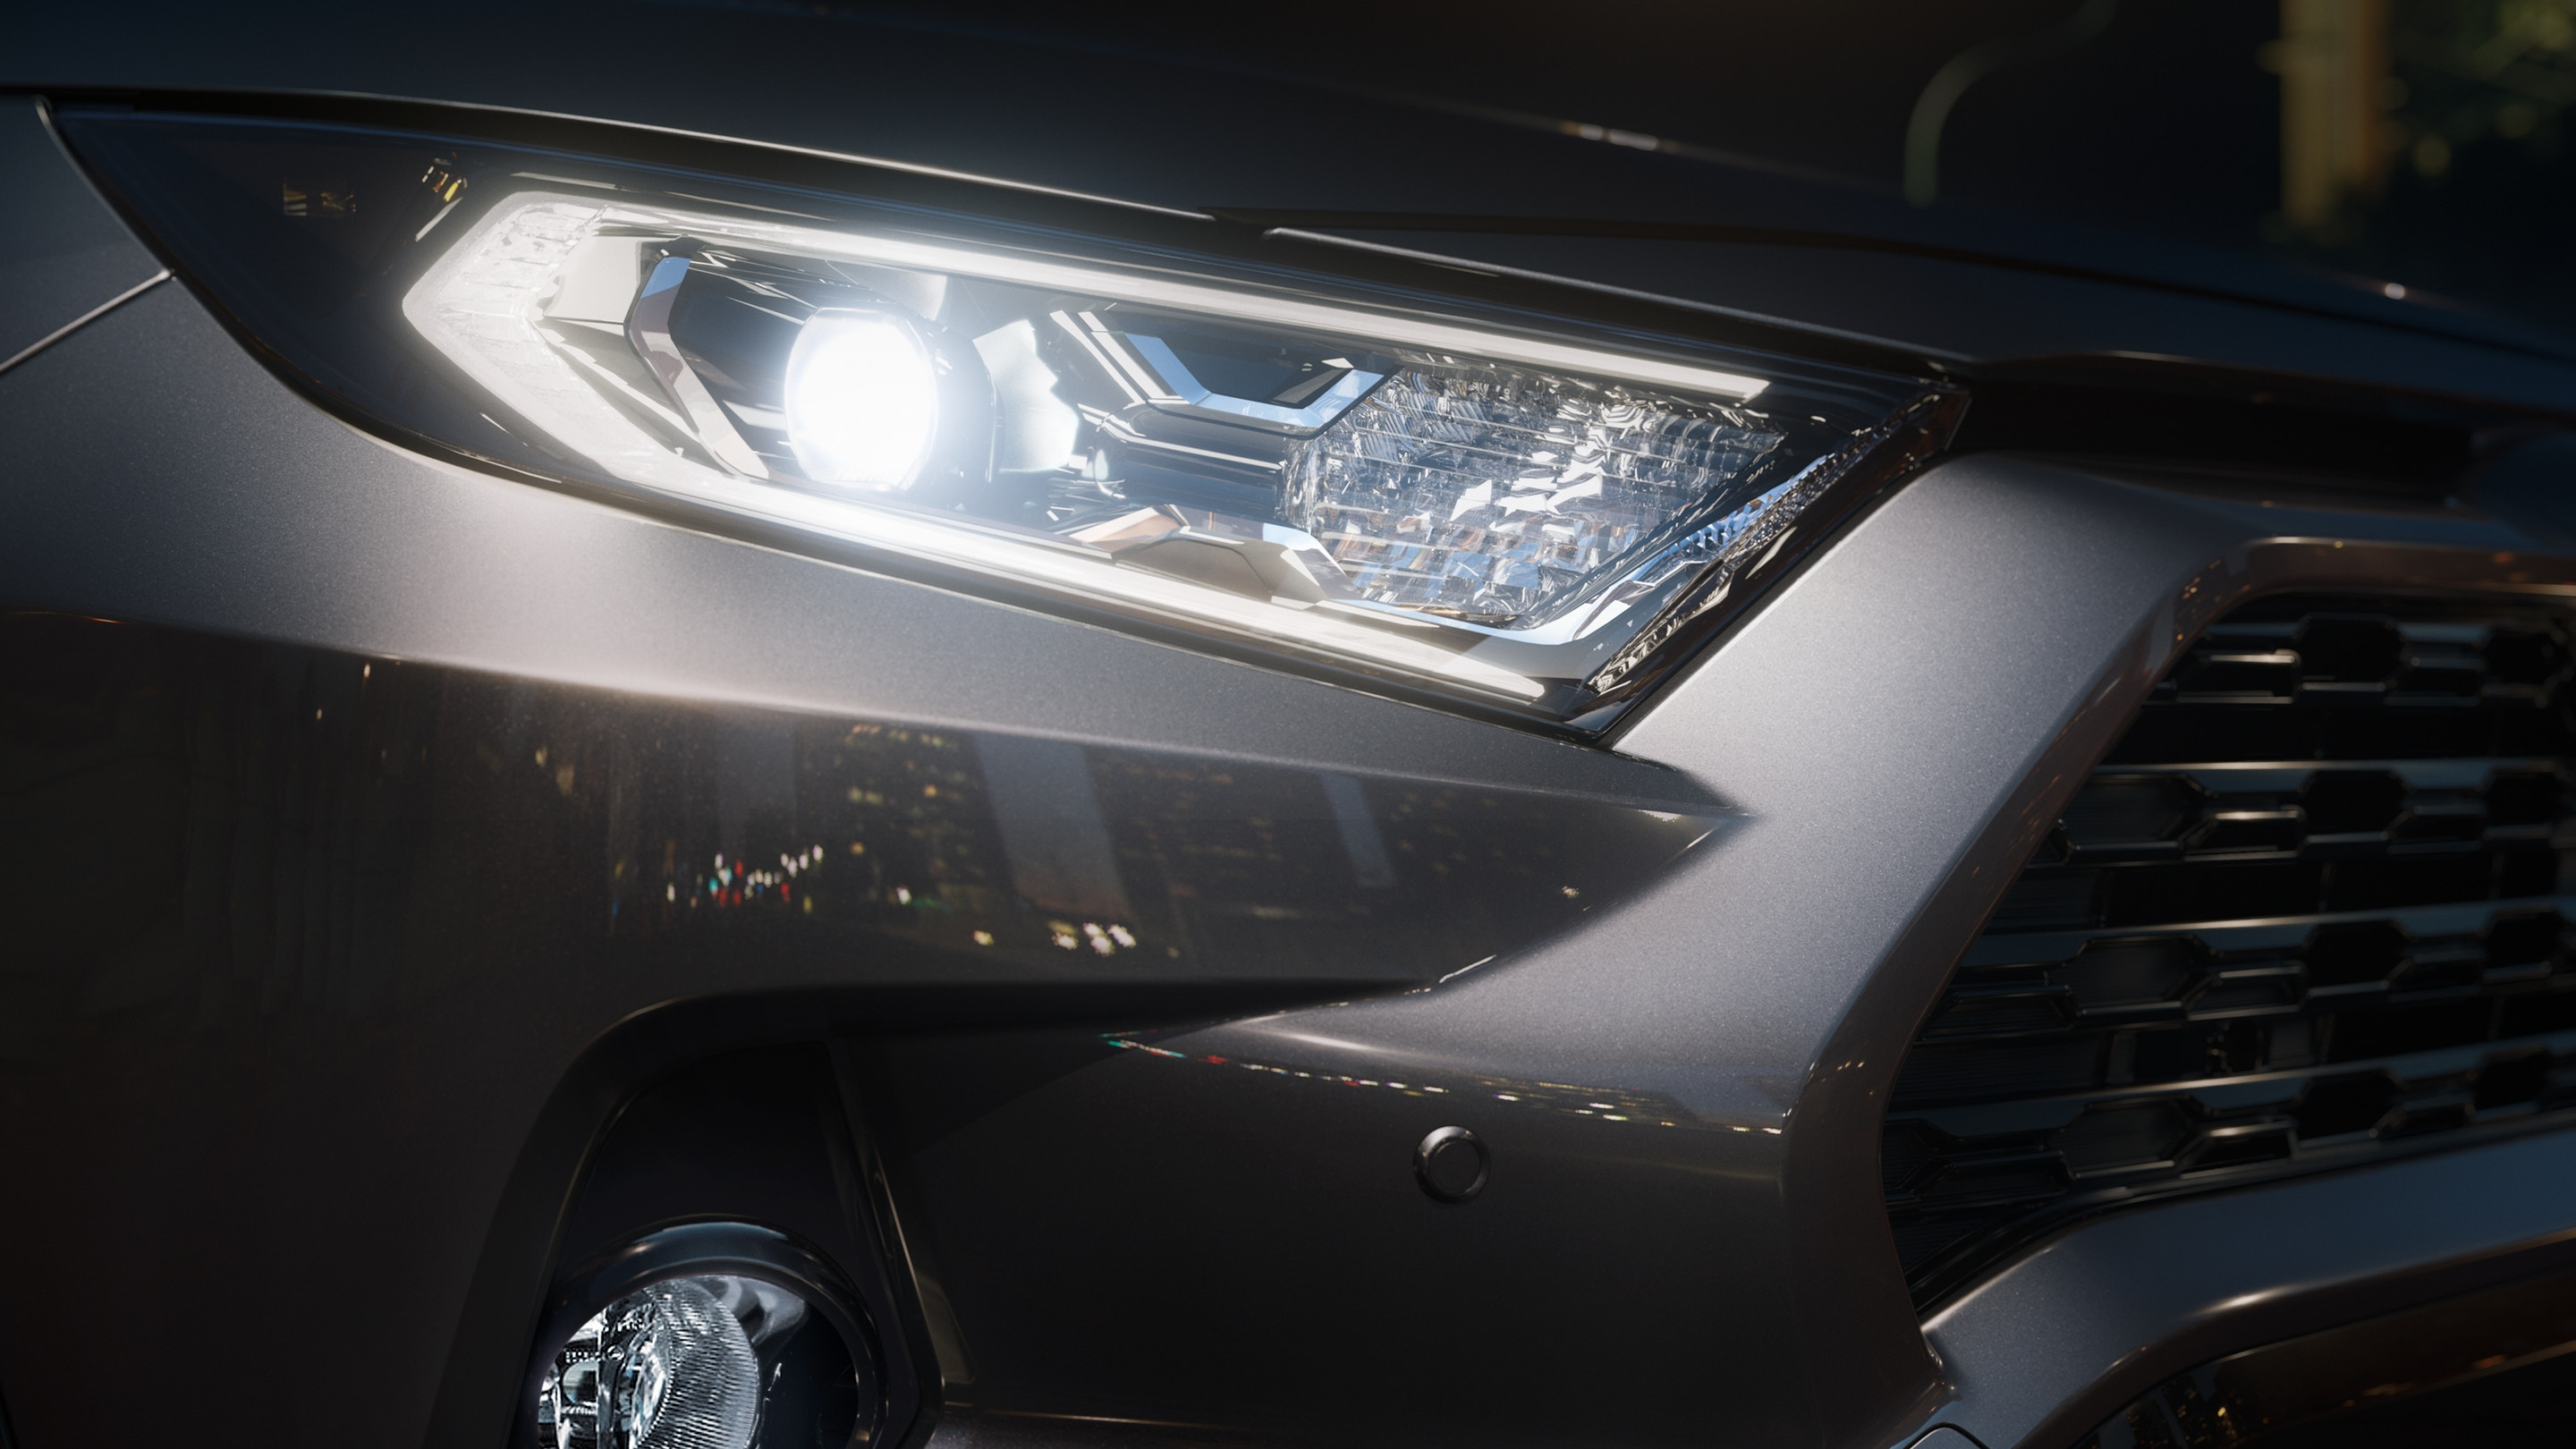 Striking Headlights of the 2019 RAV4